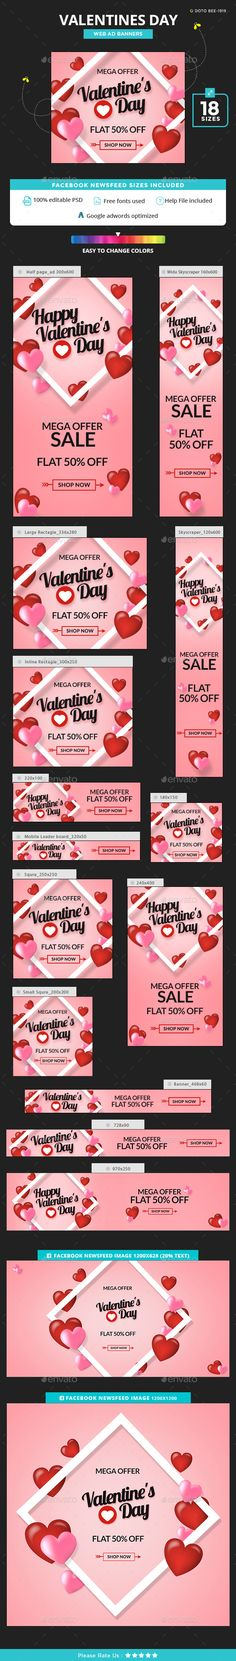 Valentines Day Banners — Photoshop PSD #coupon #adroll • Available here → https://graphicriver.net/item/valentines-day-banners/19443177?ref=pxcr